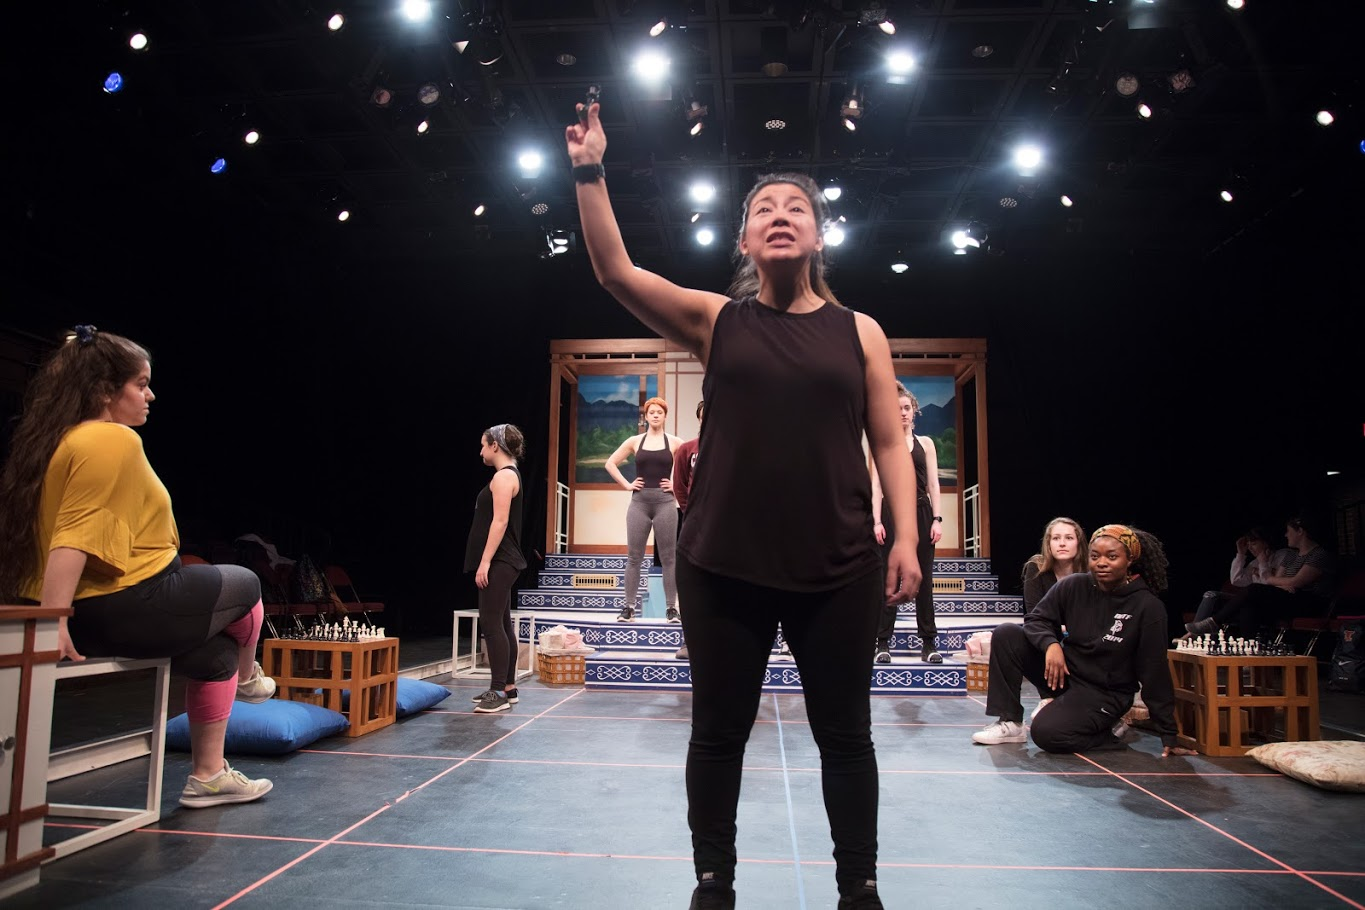 """An actress rehearses for """"Because I am your Queen (A Feminist Fantasia)"""" at the Illinois Theatre on March 13. Columnist Ellen praises artistic individuals for their creative minds."""